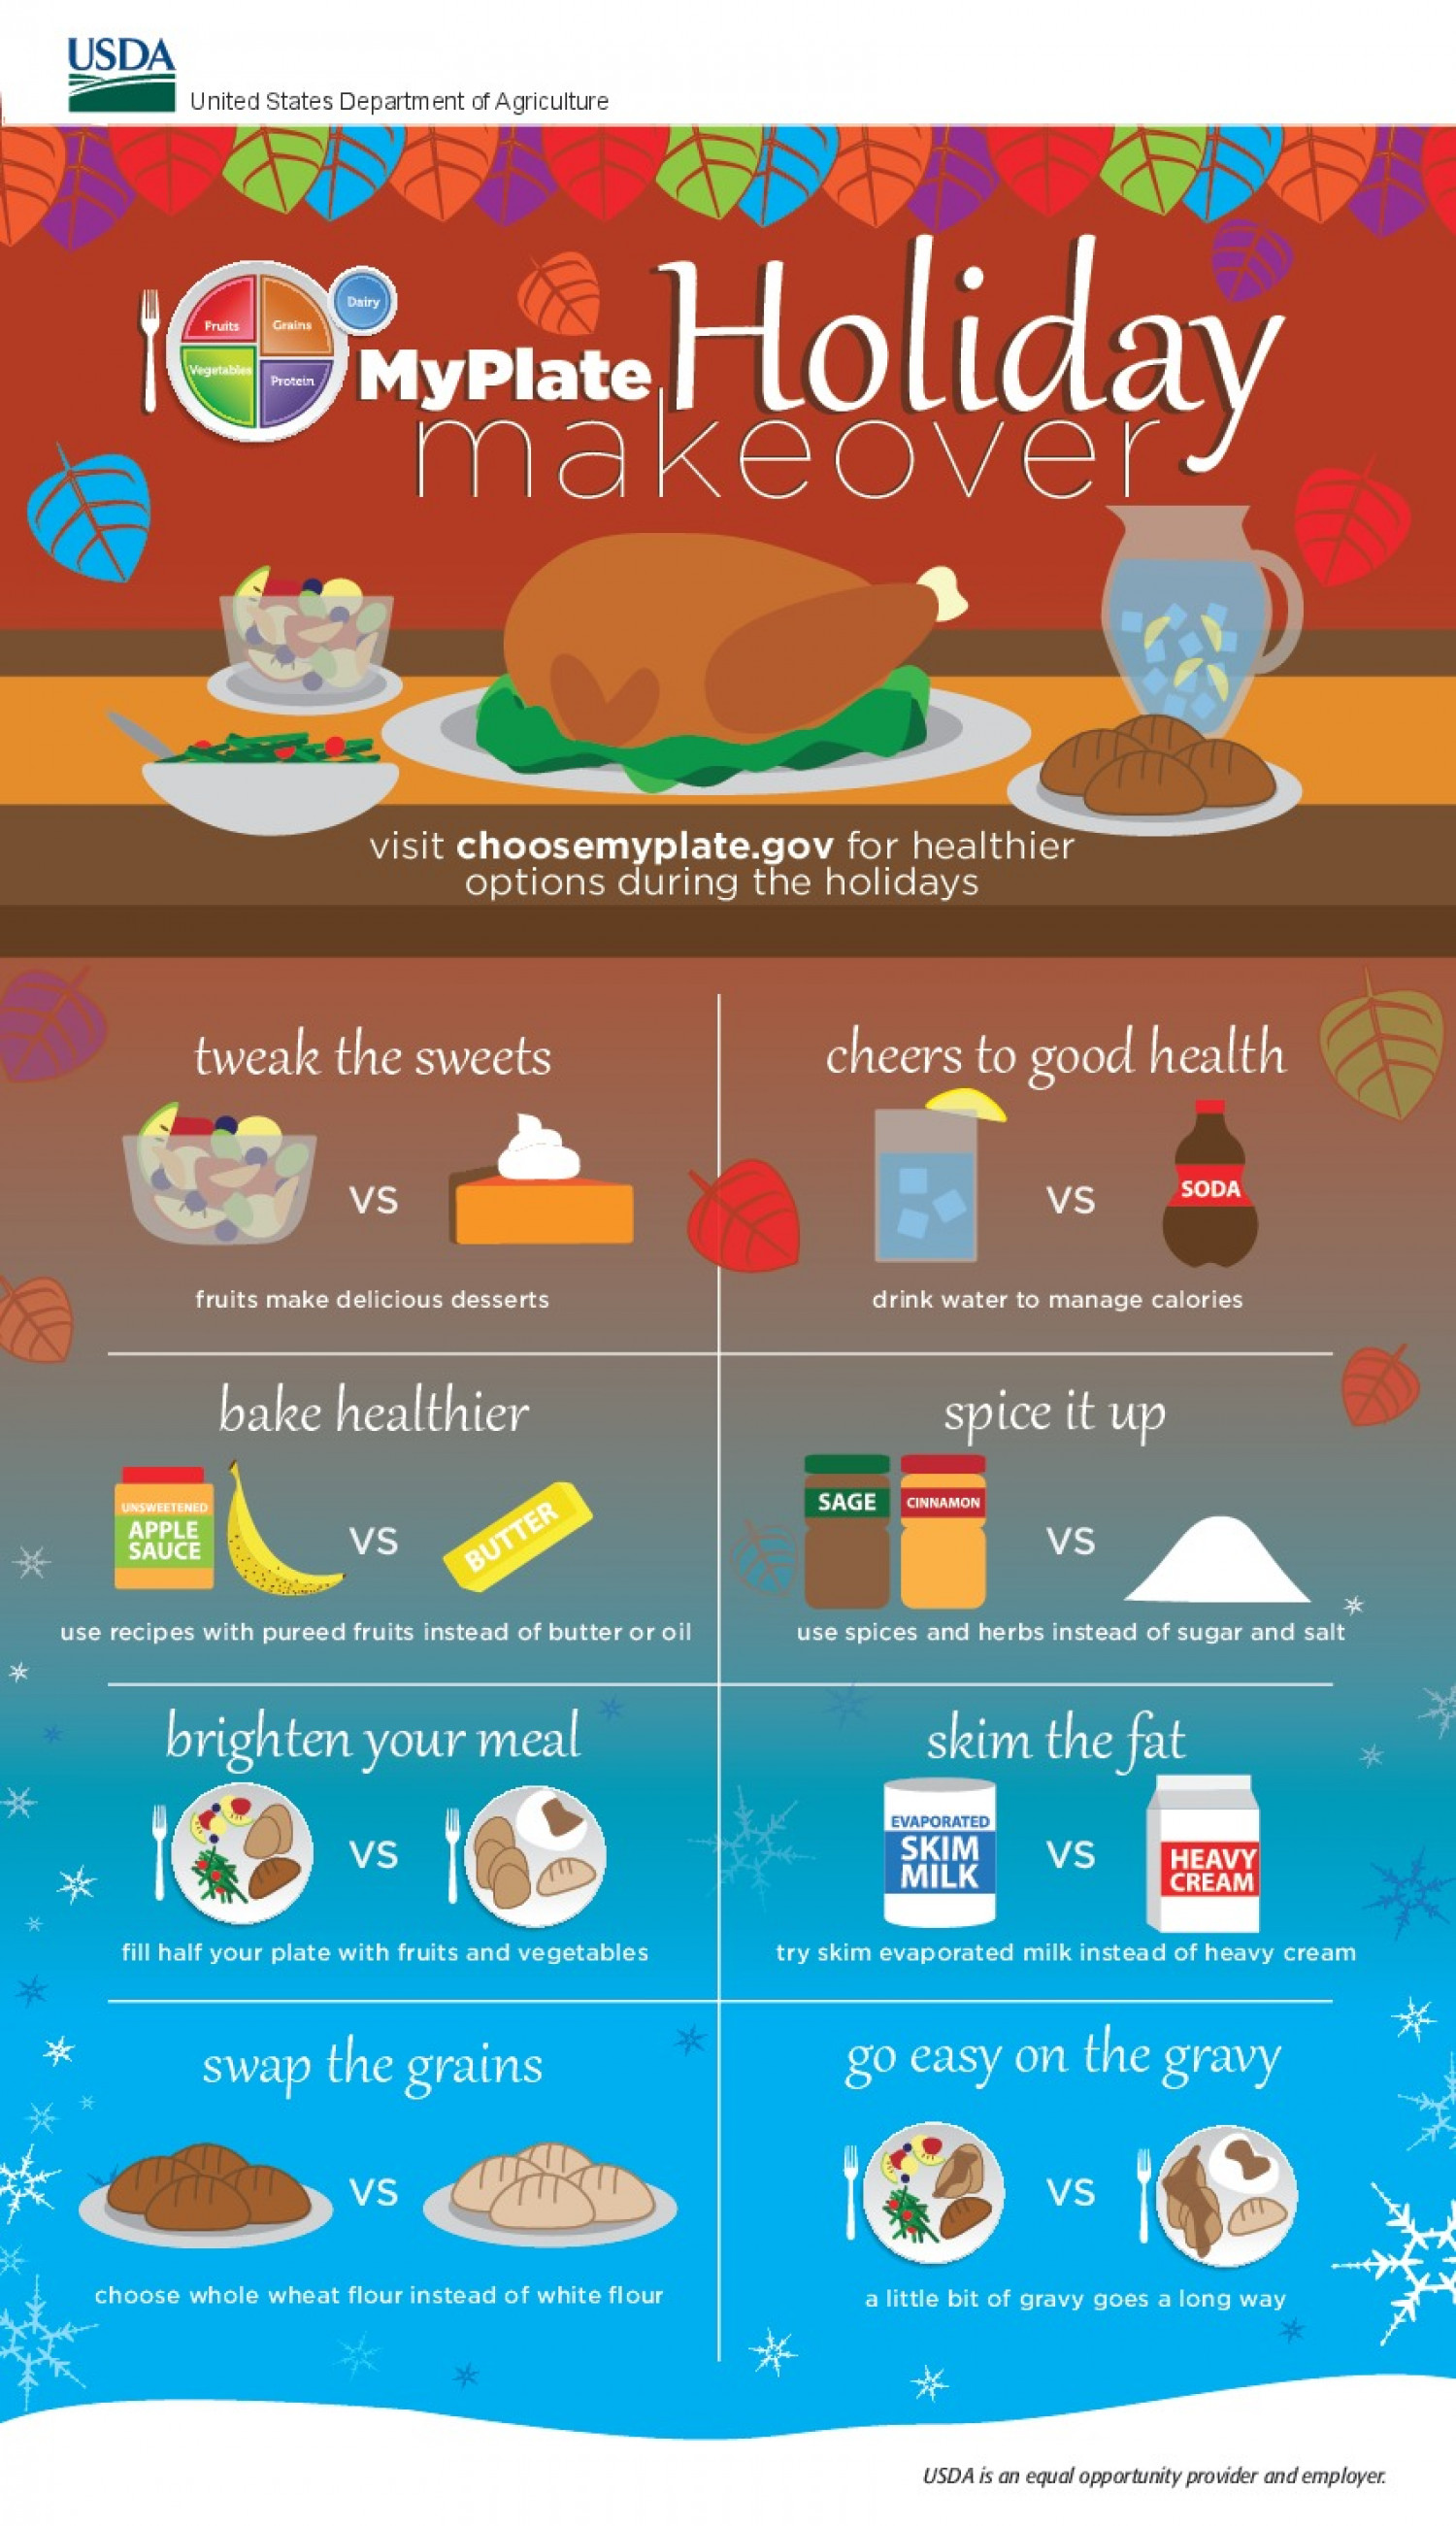 MyPlate Holiday Makeover Infographic